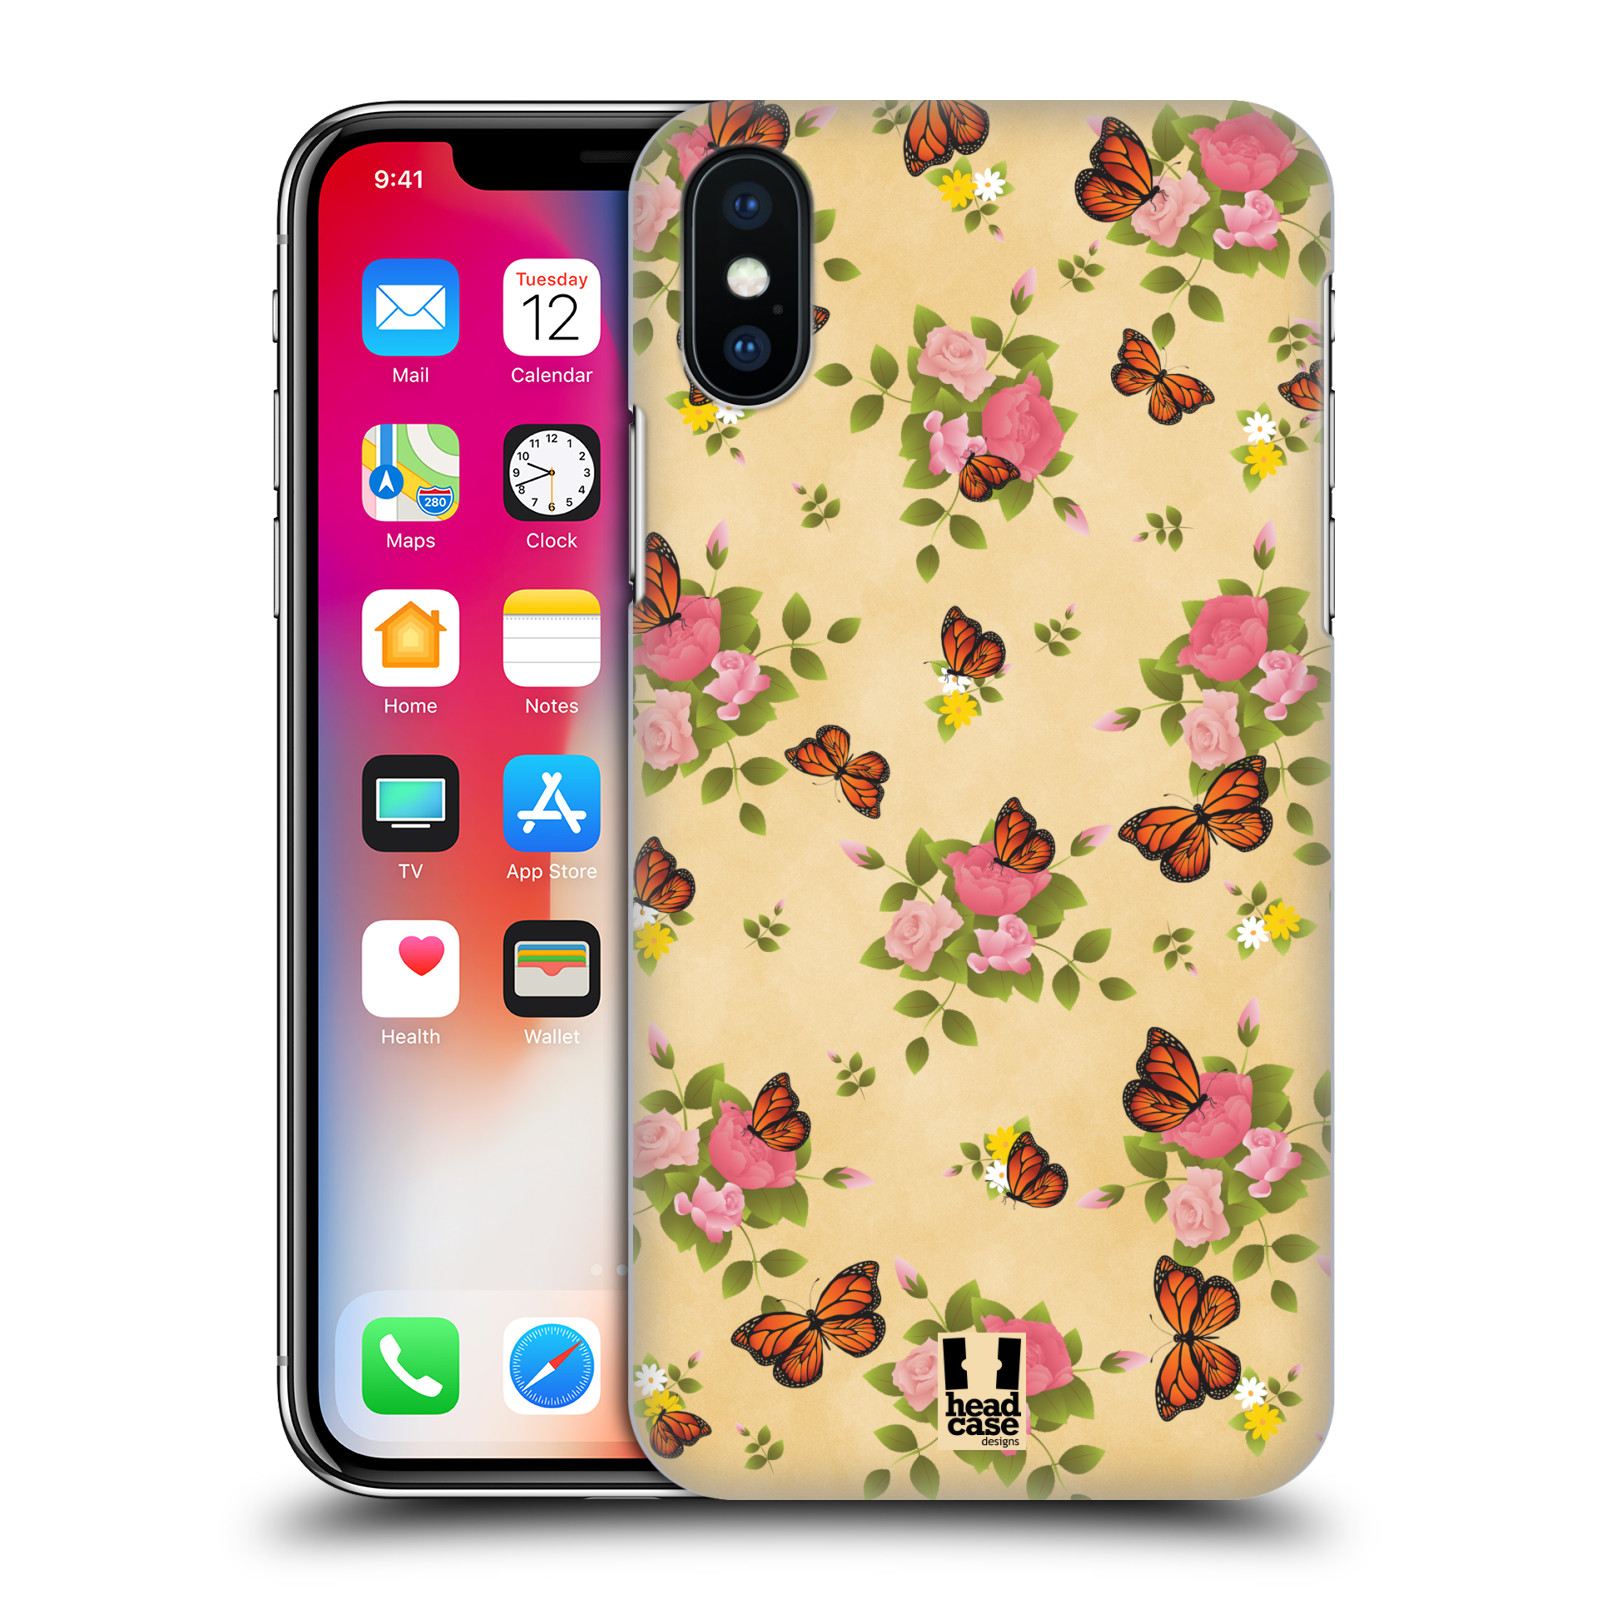 HEAD-CASE-DESIGNS-MONARCH-BUTTERFLY-PRINTS-HARD-BACK-CASE-FOR-APPLE-iPHONE-X